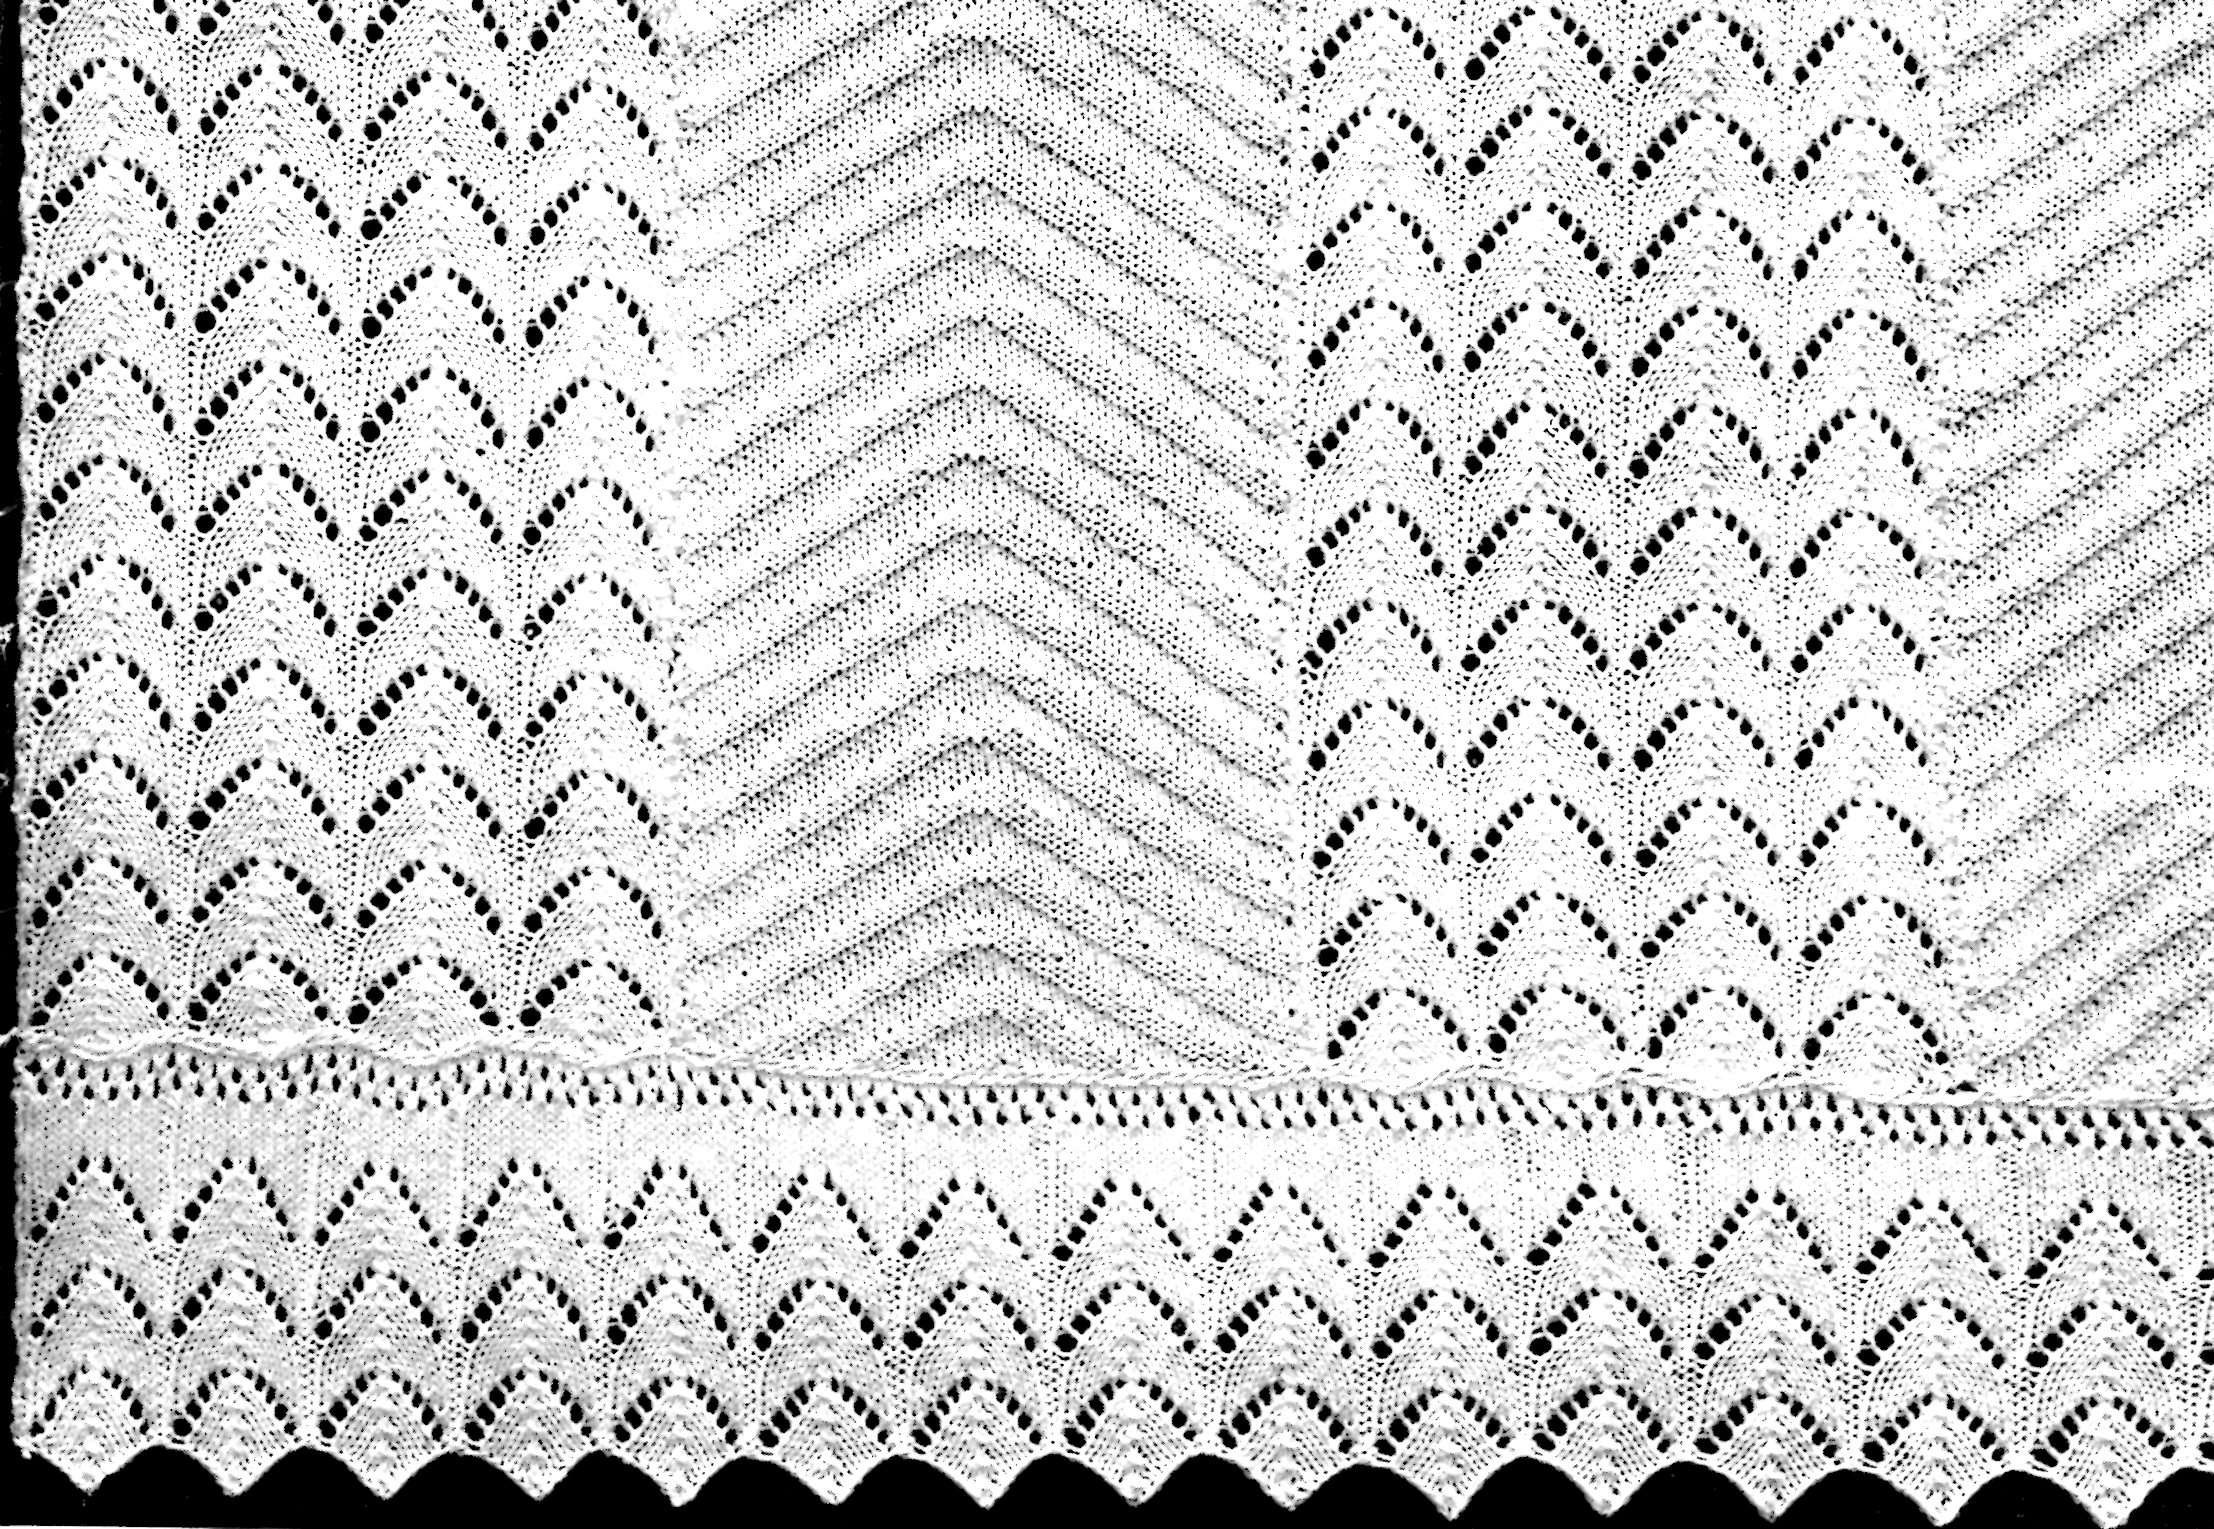 Knitting Pattern for a Bedspread in a Pointed Leaf Design - Vintage ...